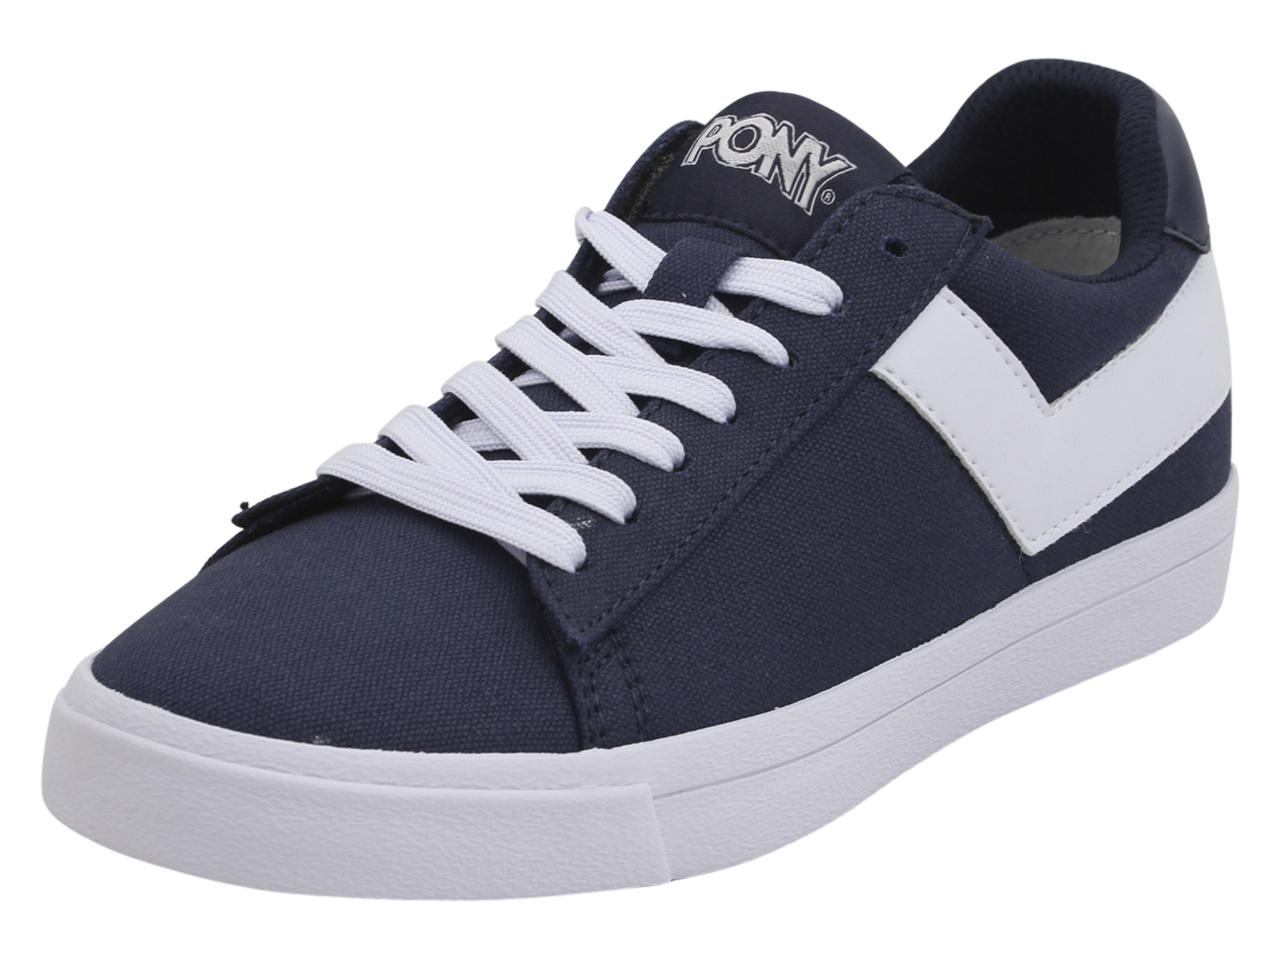 Image of Pony Women's Top Star Lo Core Canvas Sneakers Shoes - Blue - 7 B(M) US